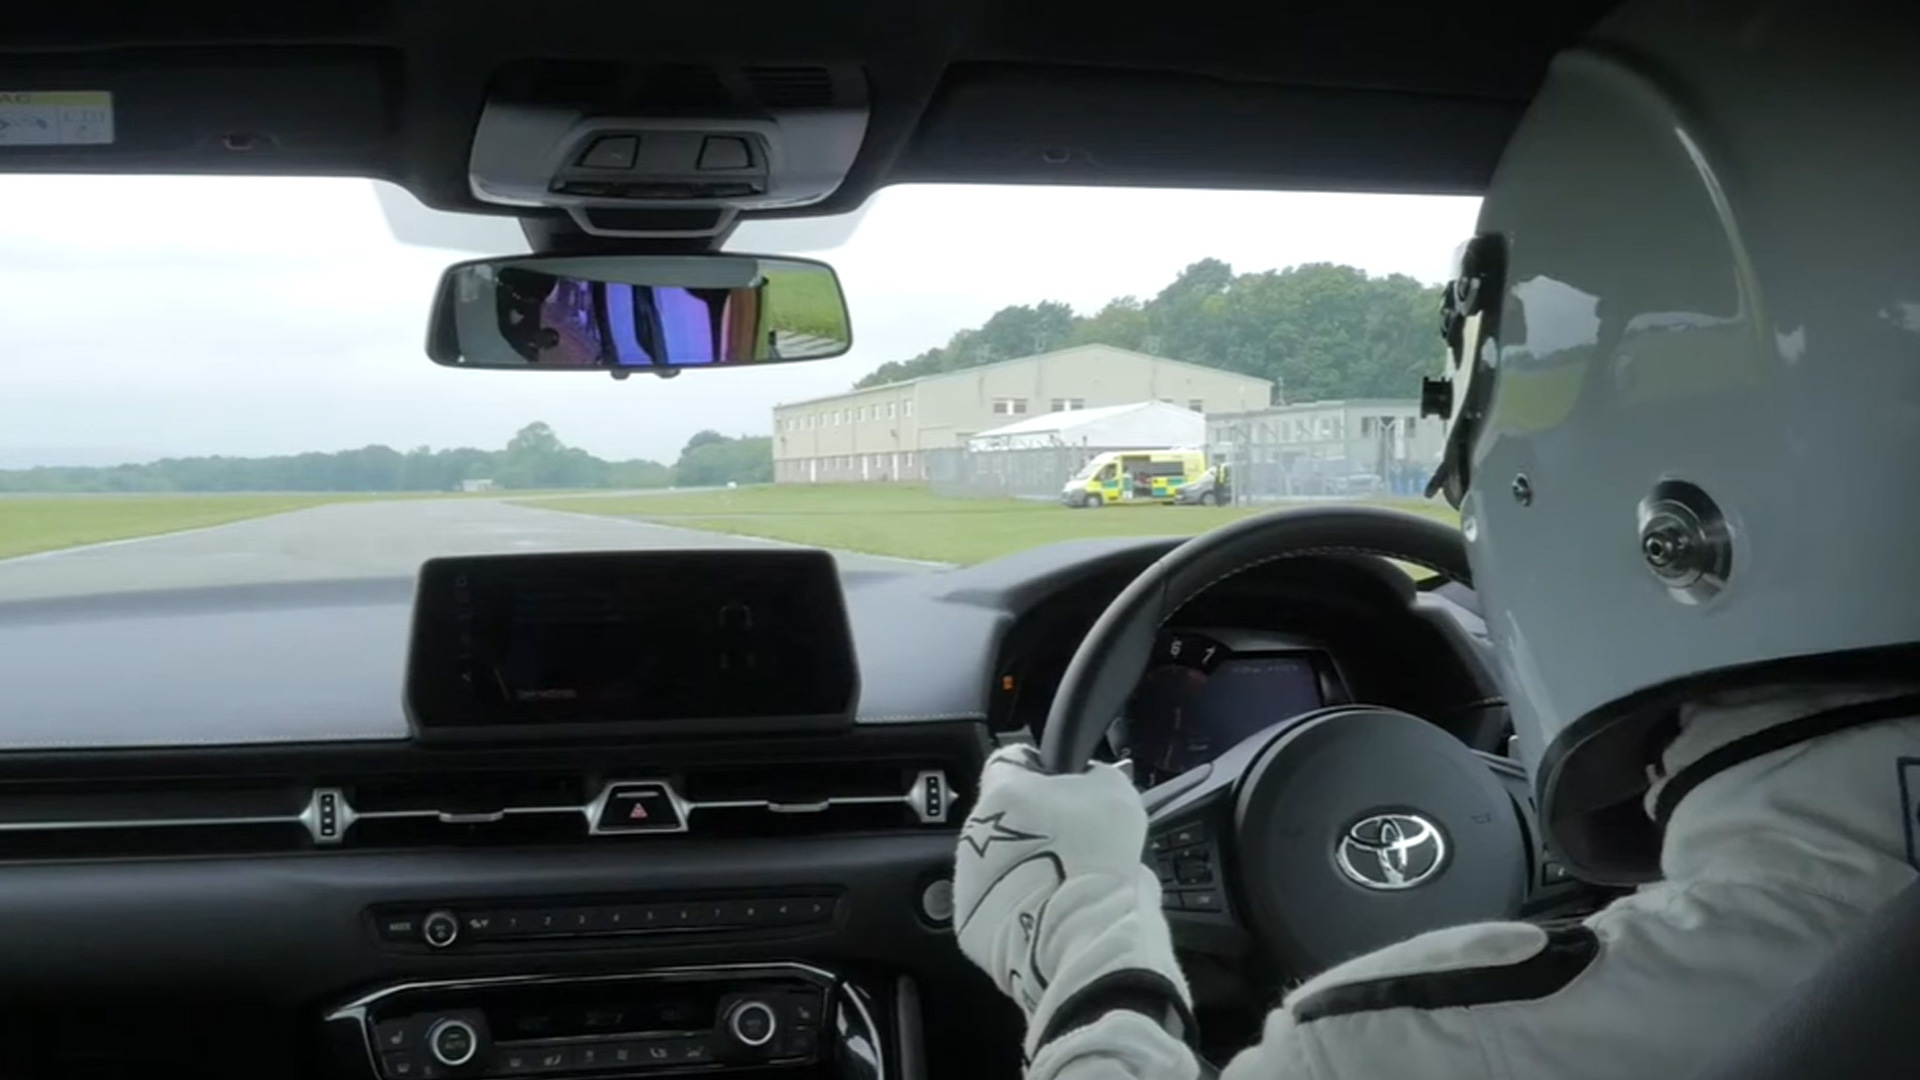 The Stig drives the 2020 Toyota Supra at the Top Gear Test Track